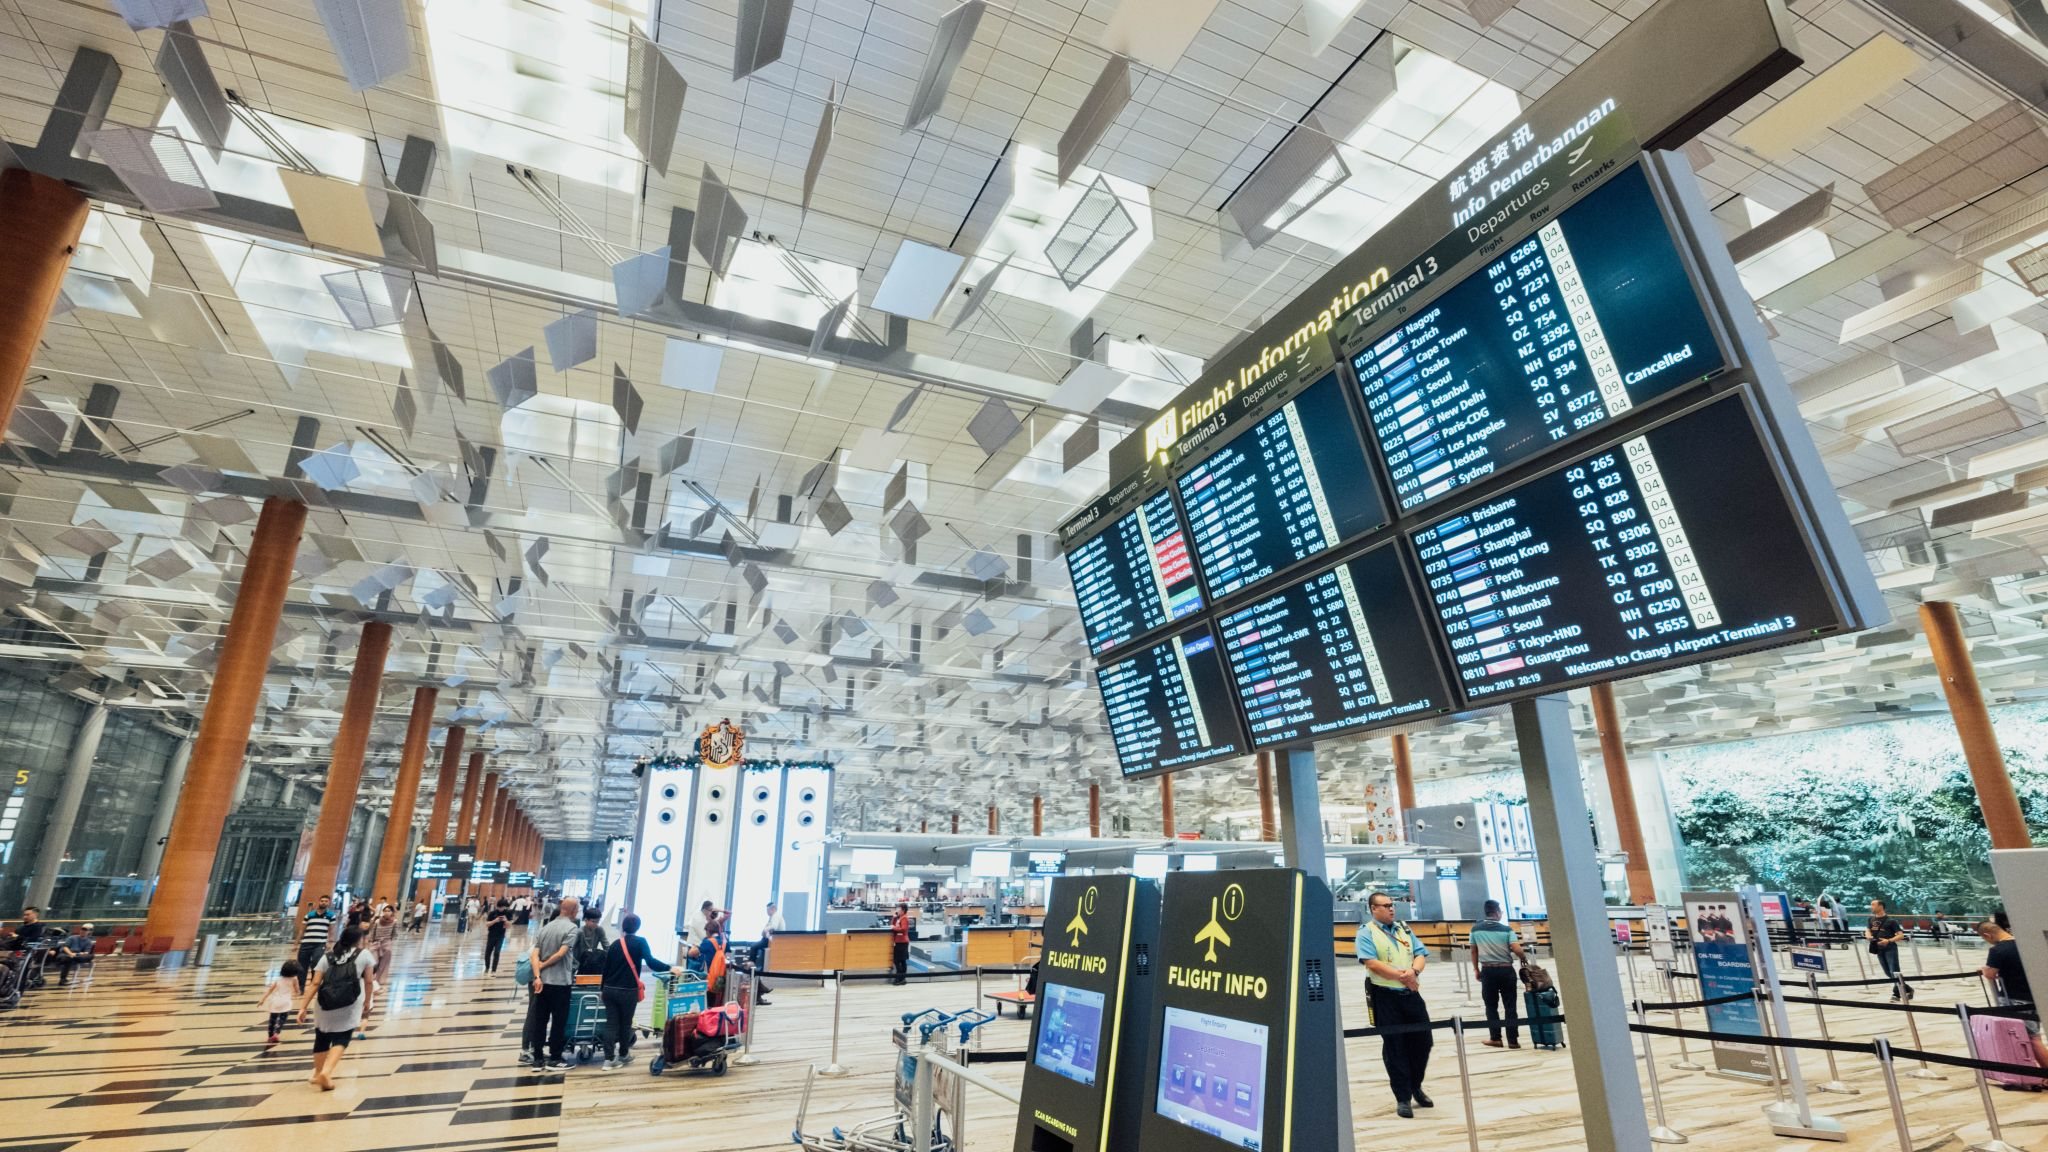 Airports' Wi-Fi Passwords